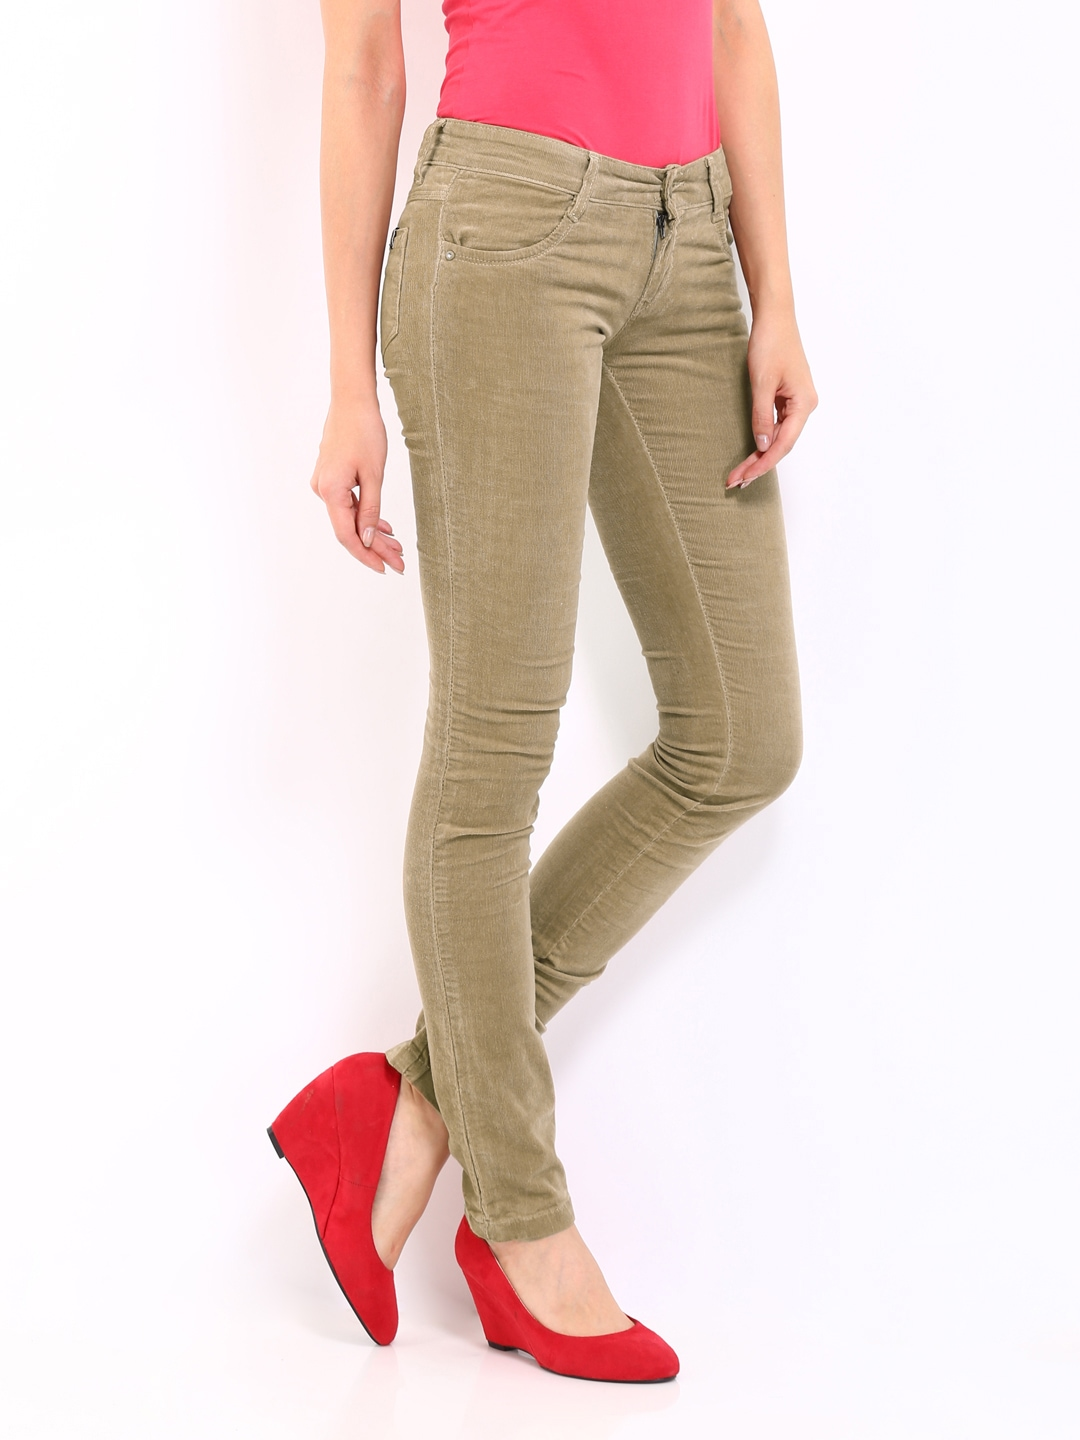 Beige Jeans For Women